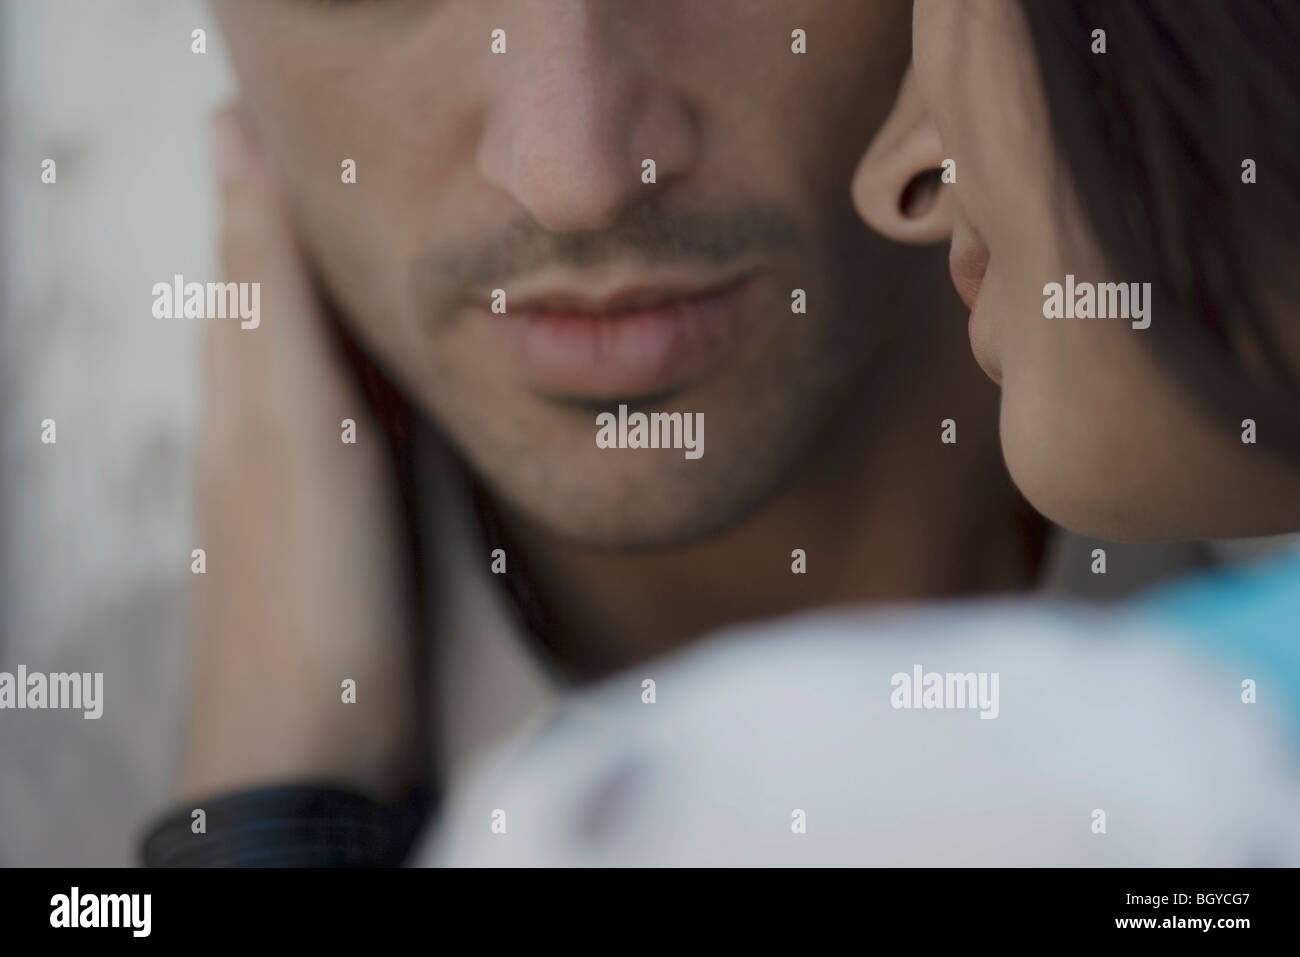 Couple close together, woman's hand caressing man's face - Stock Image